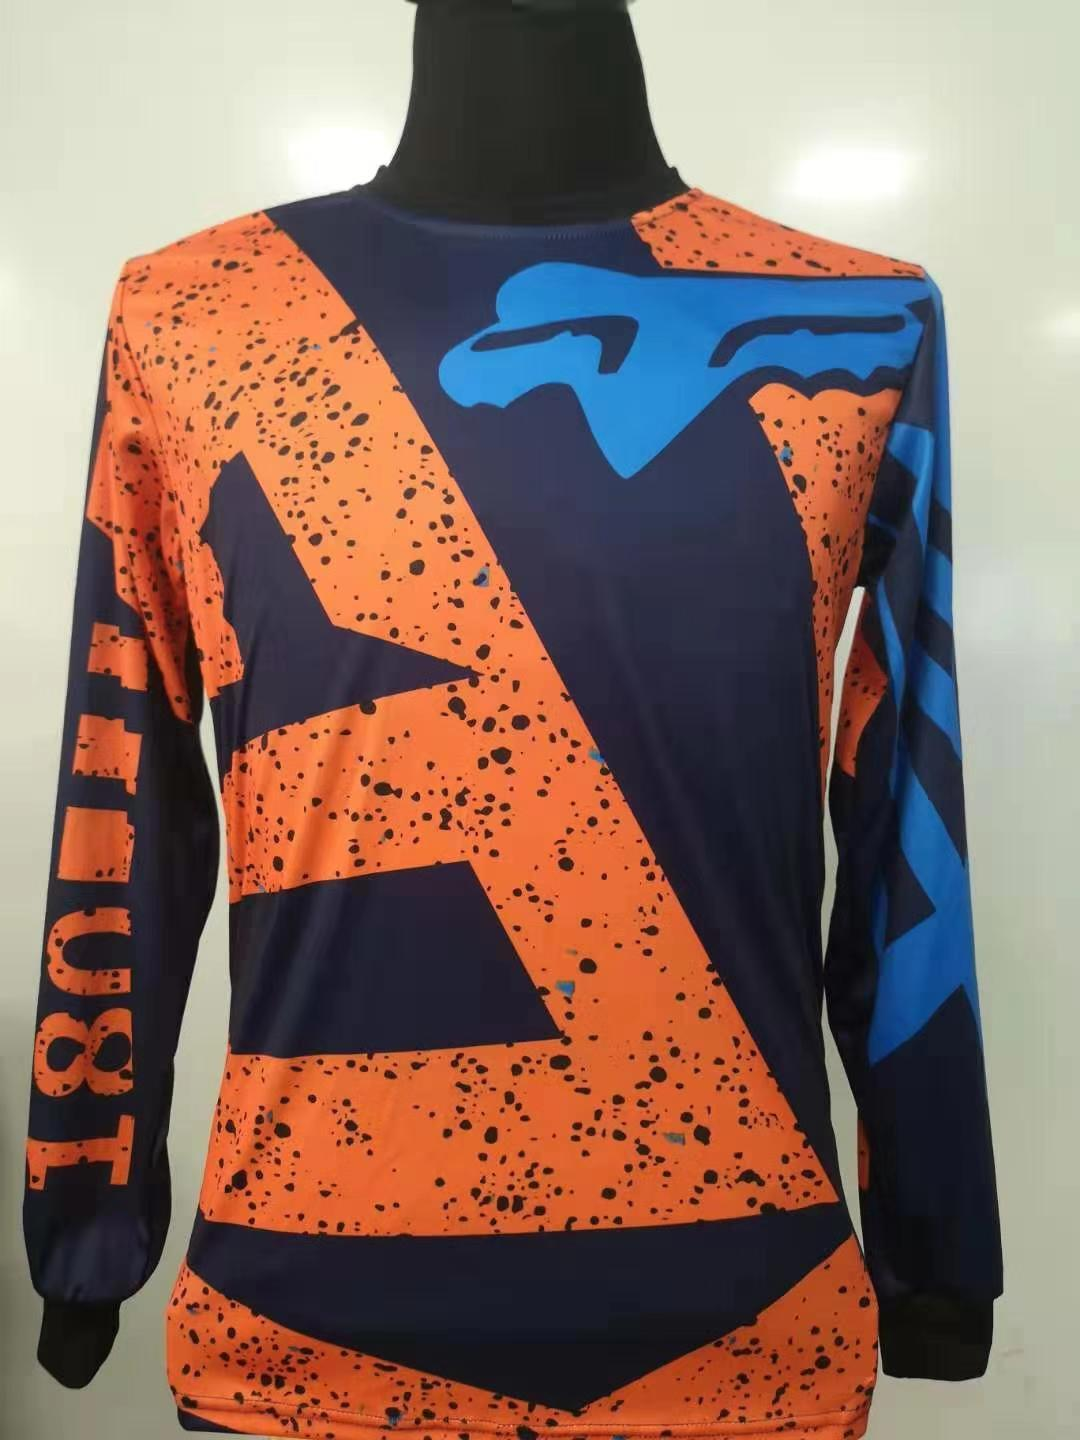 New Arrival Side Fox Racing Bike Ride Long Sleeves Jersey Design For Men Shirt Size Chart Inch Sizes